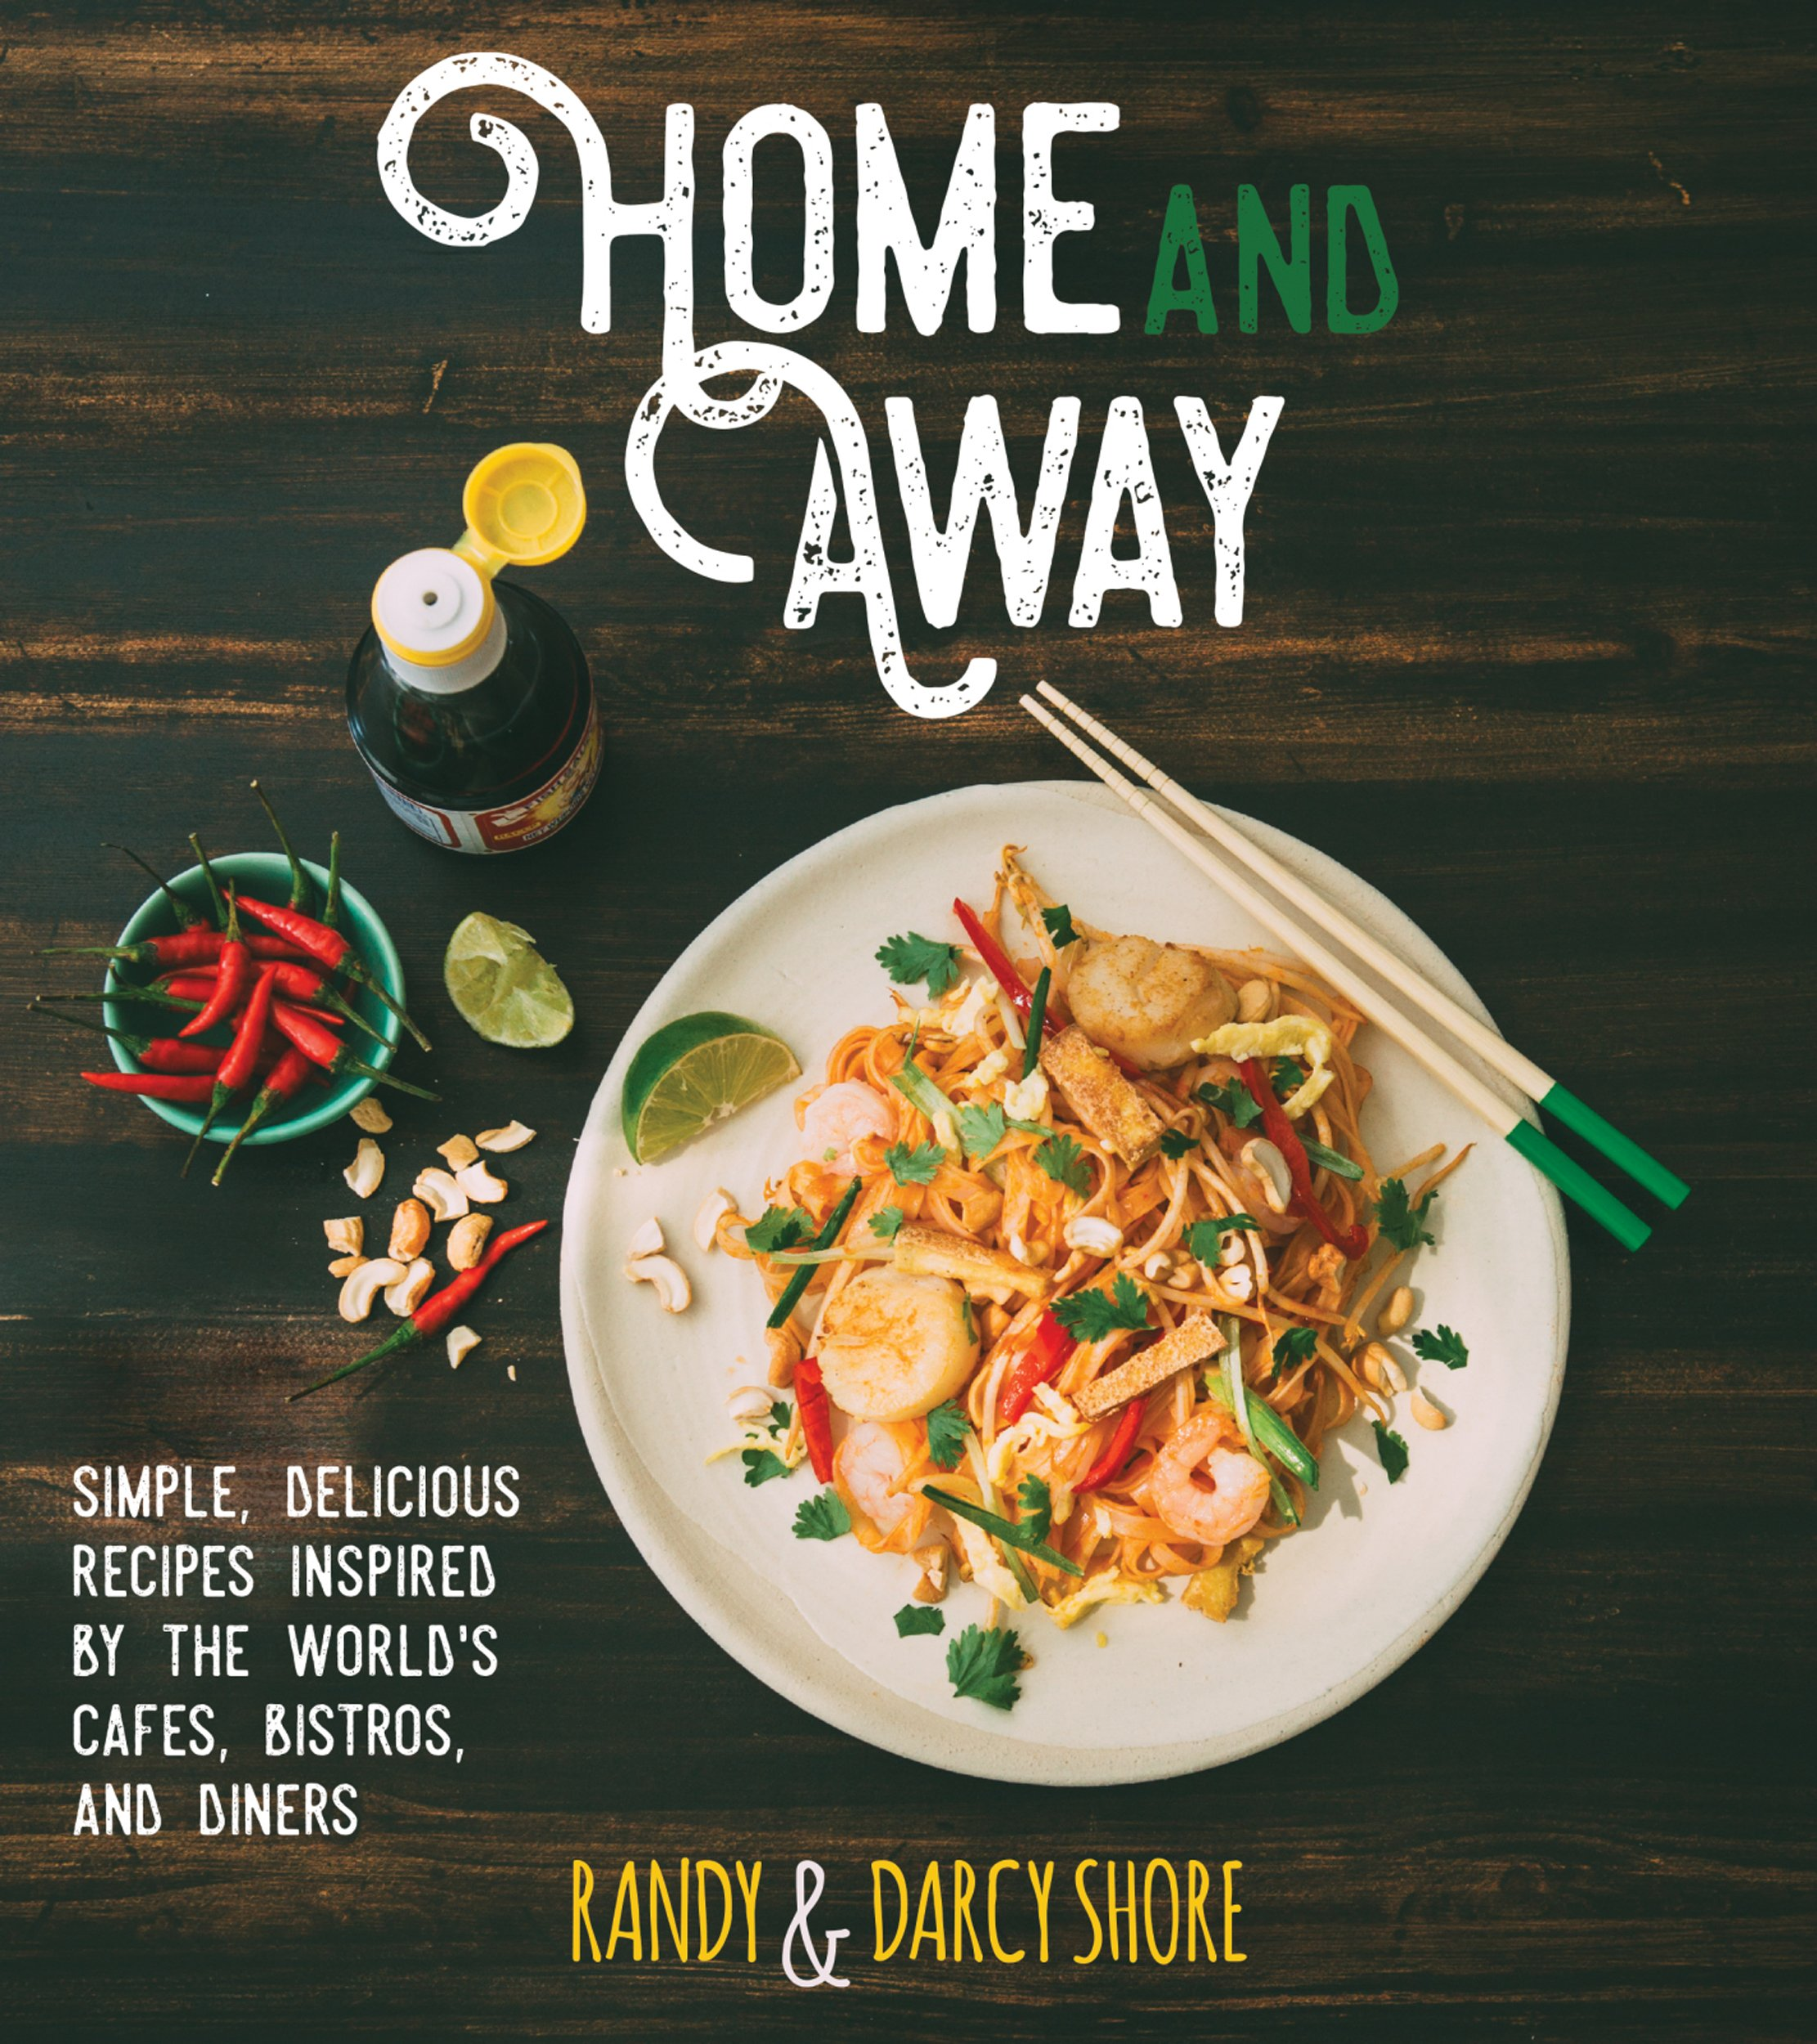 Home and Away: Simple, Delicious Recipes Inspired by the World's Cafes, Bistros, and Diners pdf epub